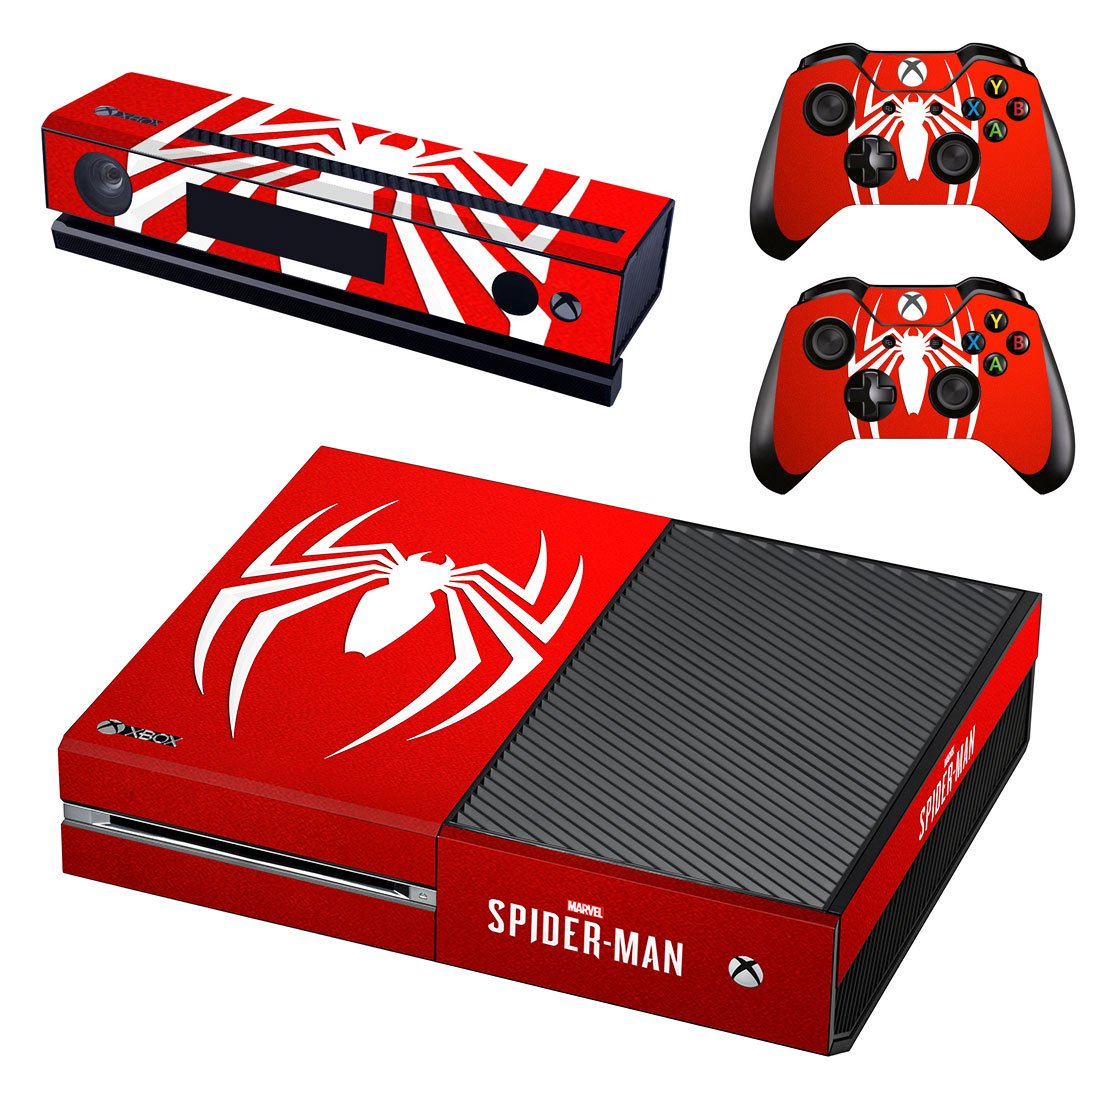 Spider-Man Xbox One Skin Sticker Wrap